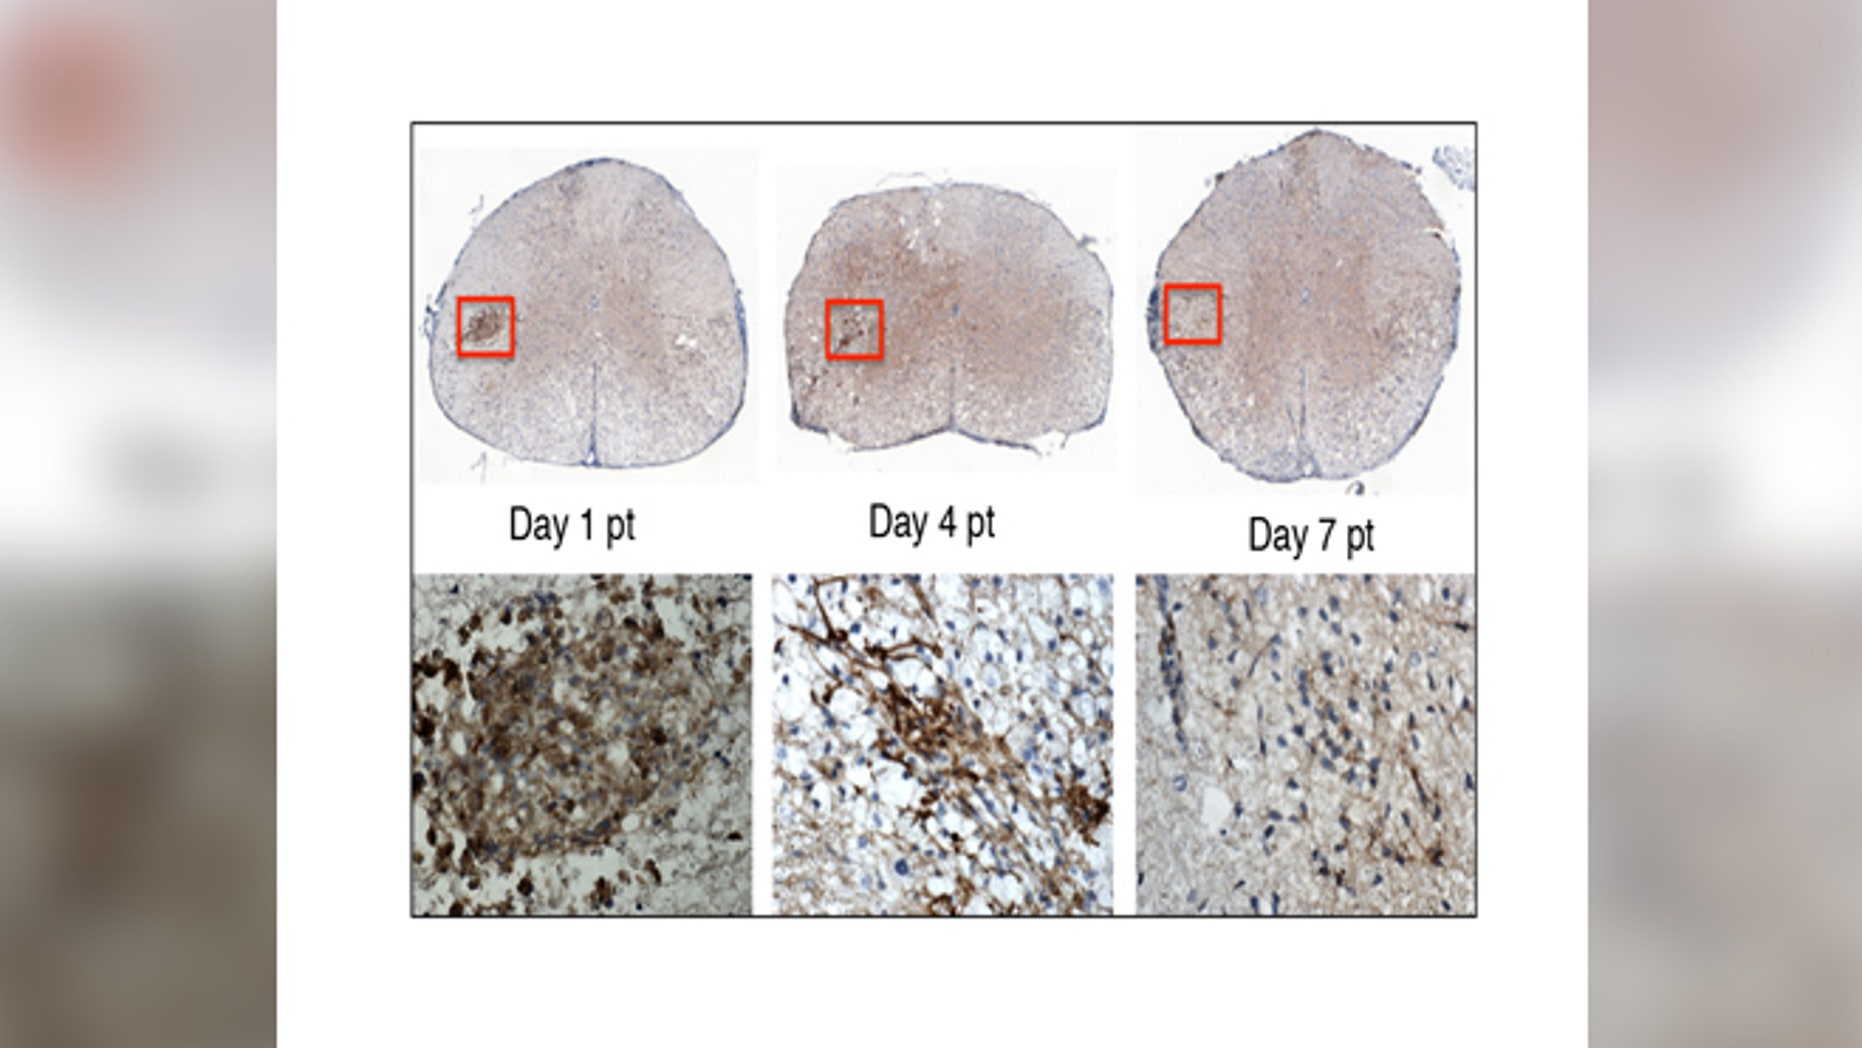 In this image, the top row shows the stem cells transplanted into the mouse spinal cord. The lower row shows a close-up of the stem cells (brown). By day 7 post-transplant, the stem cells are no longer detectable. Within this short period of time, the stem cells have sent chemical signals to the mouse's own cells, enabling them to repair the nerve damage caused by MS. (image: Lu Chen)